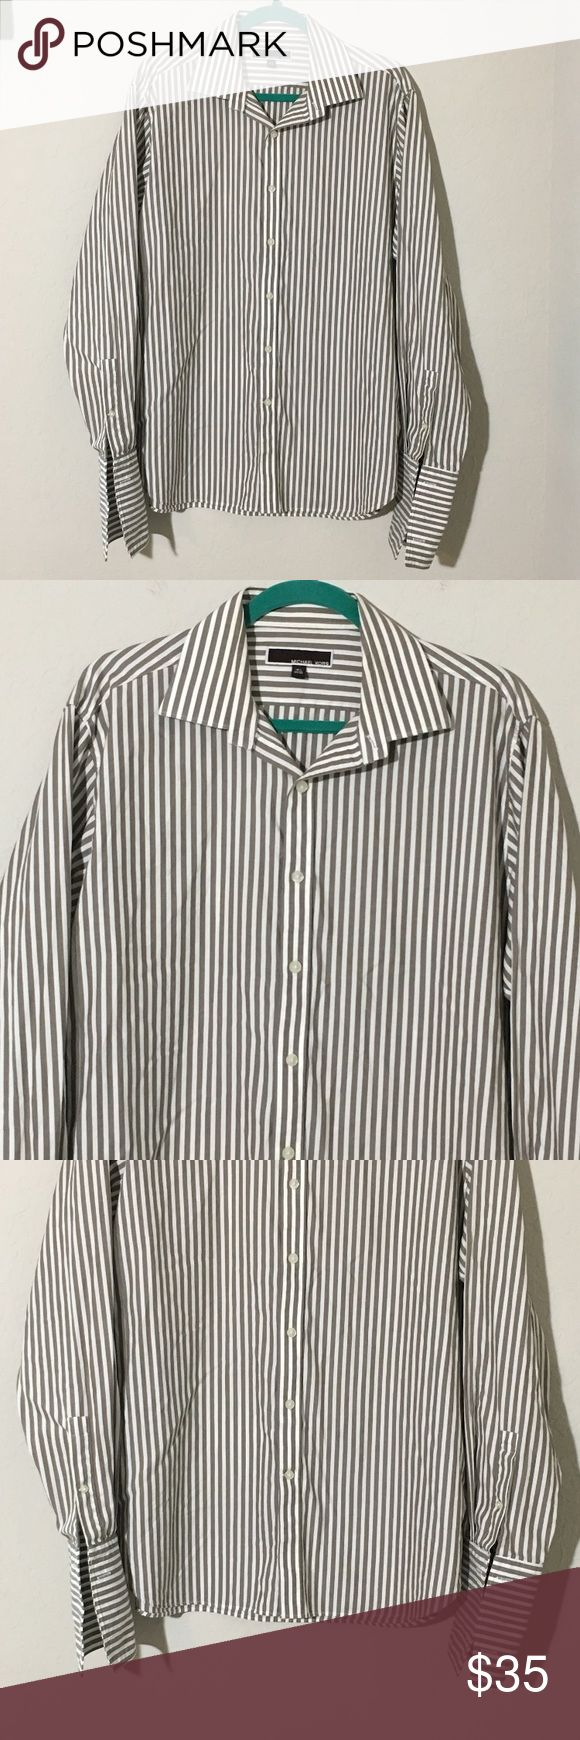 """Michael Kors Brown Striped French Cuff Dress Shirt Men's Michael Kors brown and white striped long sleeve french cuff dress shirt Sz 16.5"""" neck 34/35"""" sleeves. Excellent condition no flaws Michael Kors Shirts Dress Shirts"""